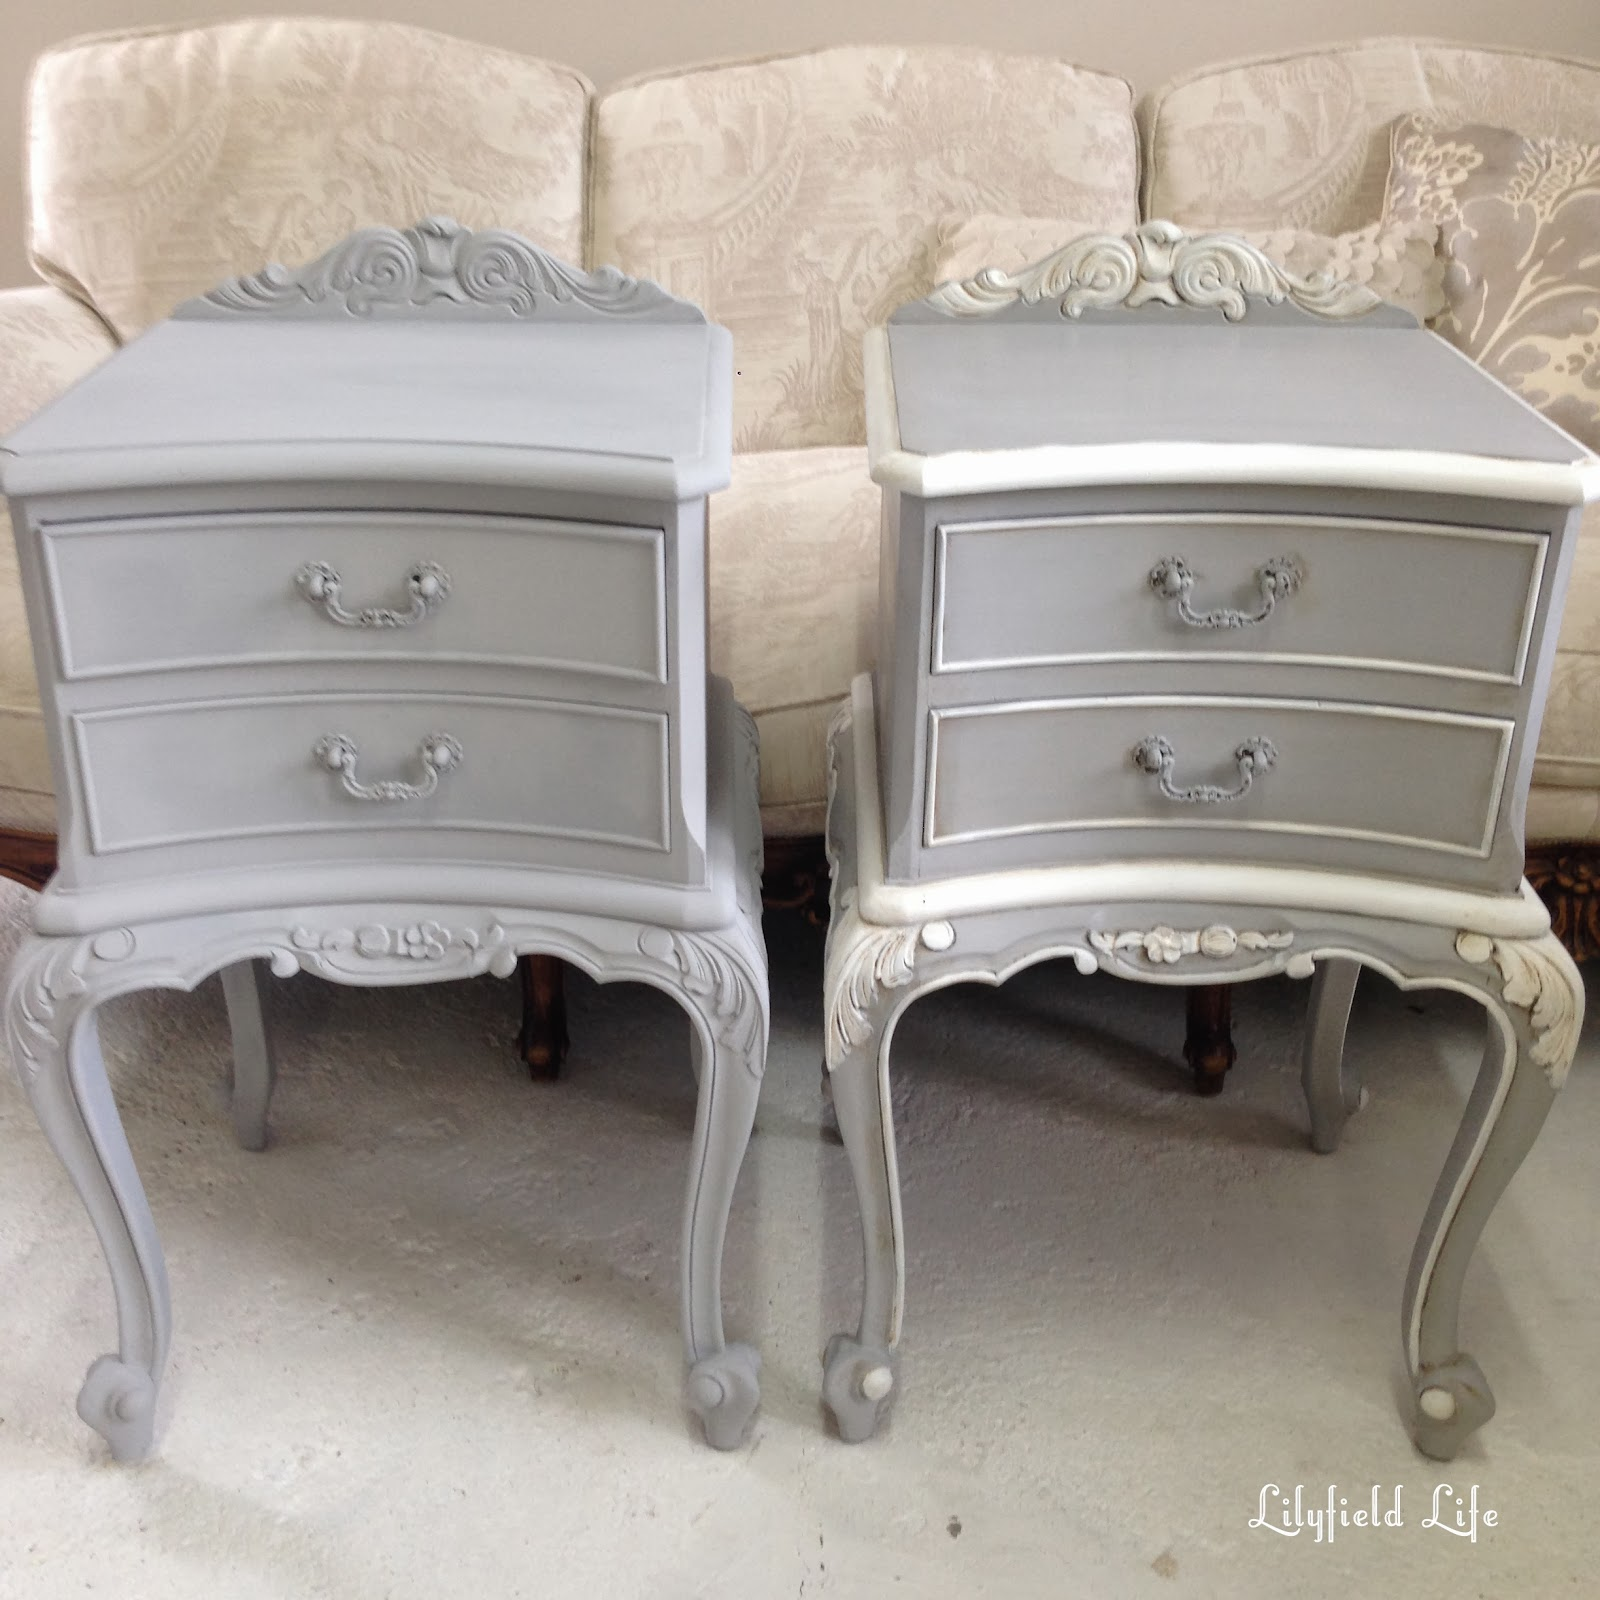 Attractive How To Make Furniture Look Vintage | My Web Value QM35